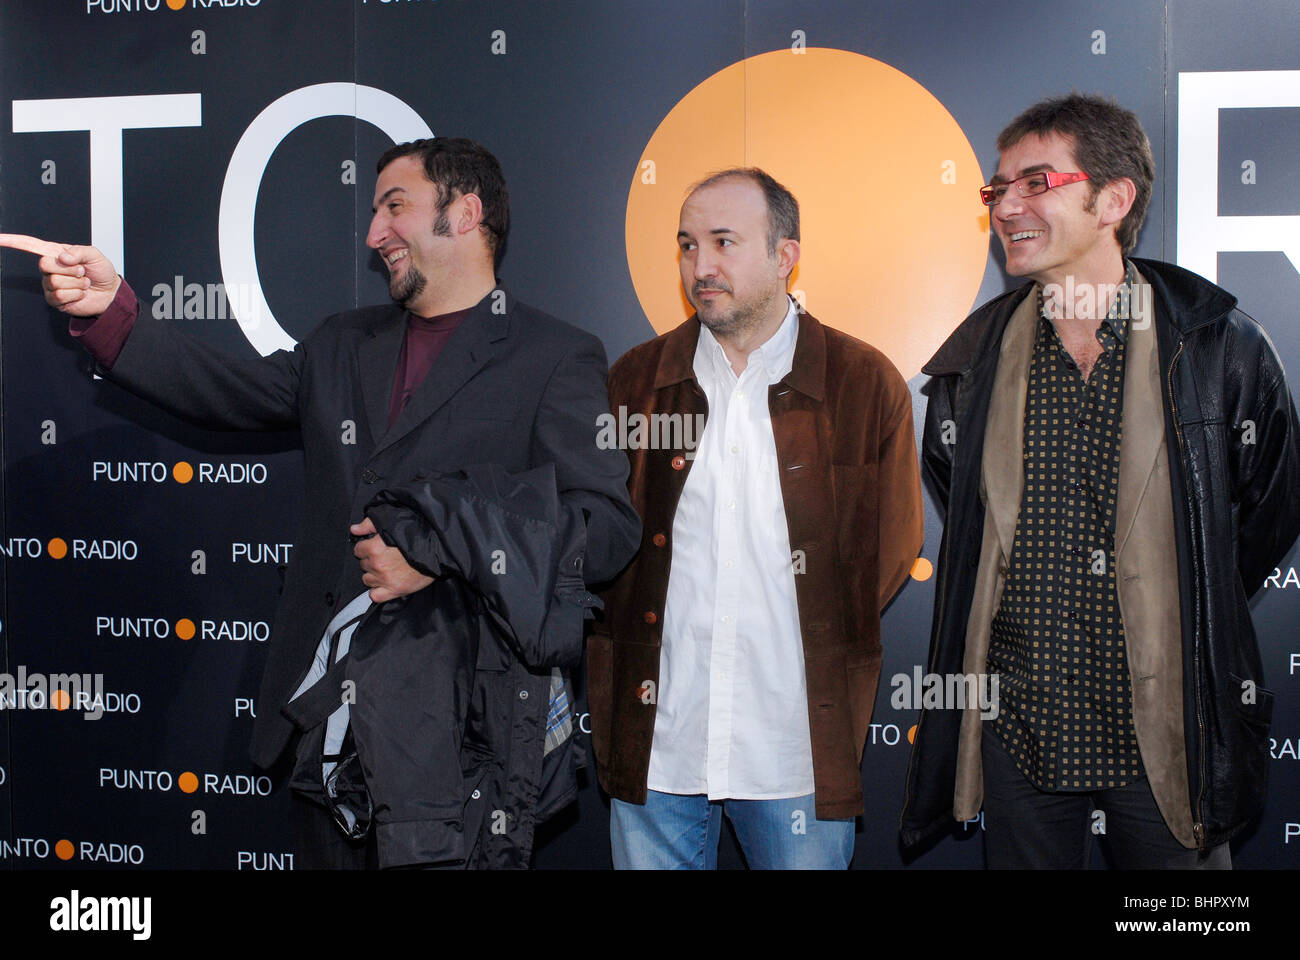 Toni Soler, Sergi Mas y Queco Novell attending to the protagonistas awards in Barcelona Stock Photo